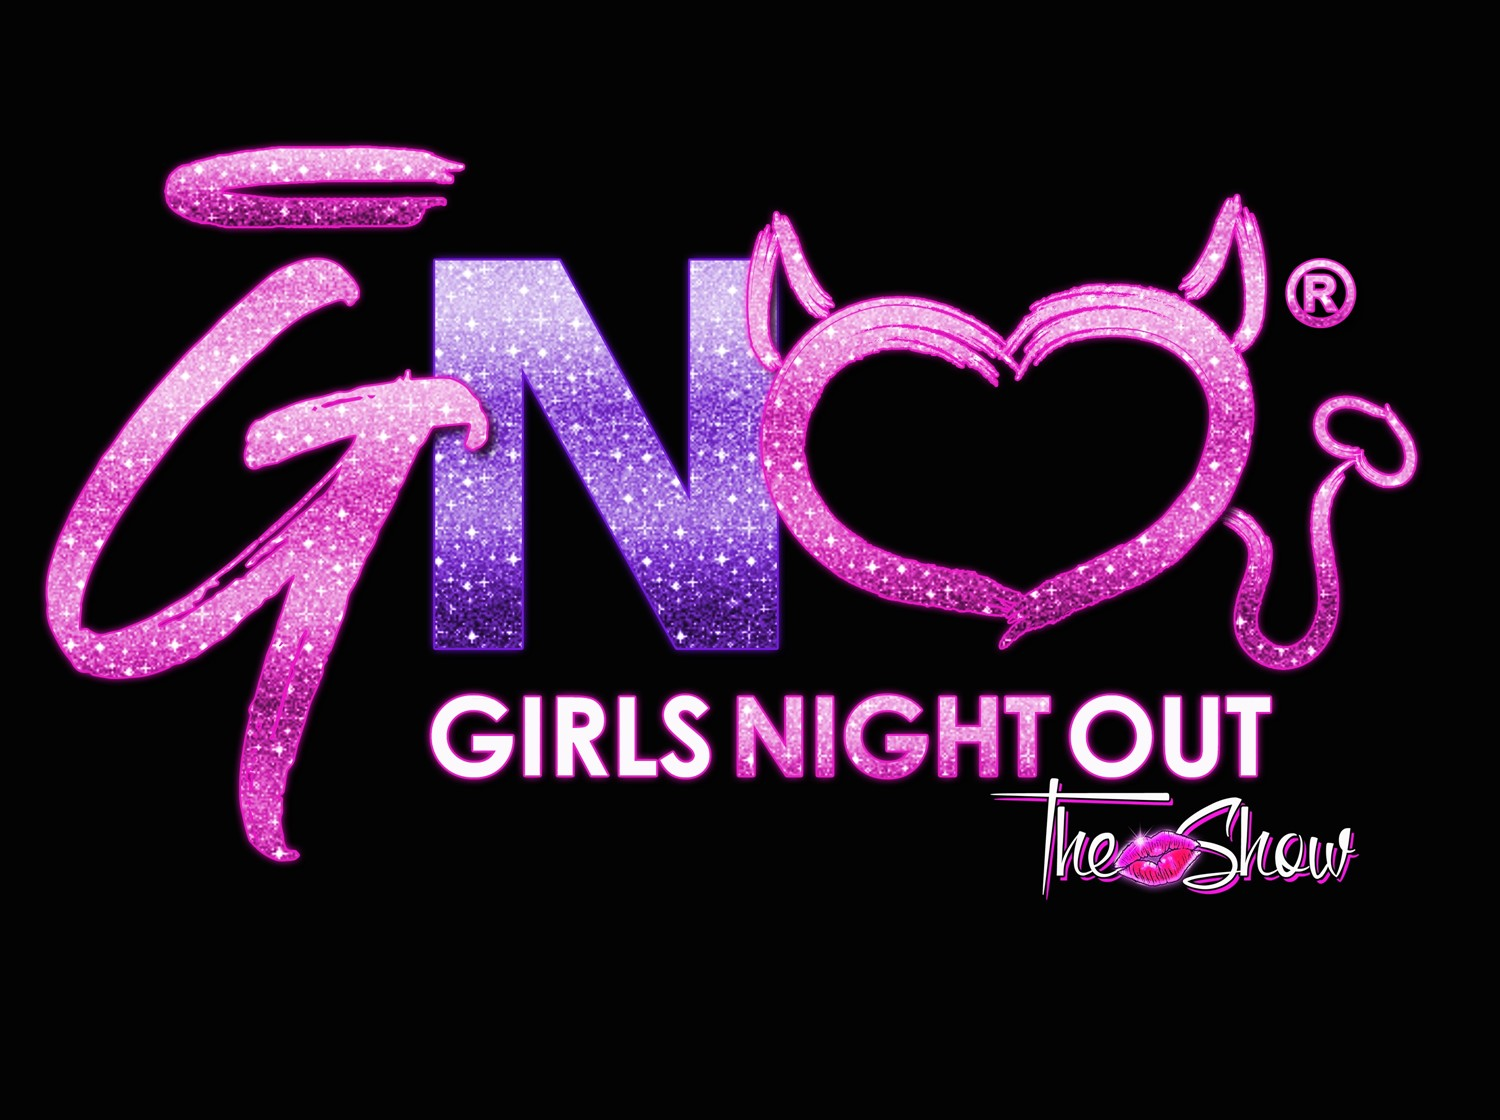 The Warrior (18+) Tallahassee, FL on Feb 20, 20:00@The Warrior - Buy tickets and Get information on Girls Night Out the Show tickets.girlsnightouttheshow.com